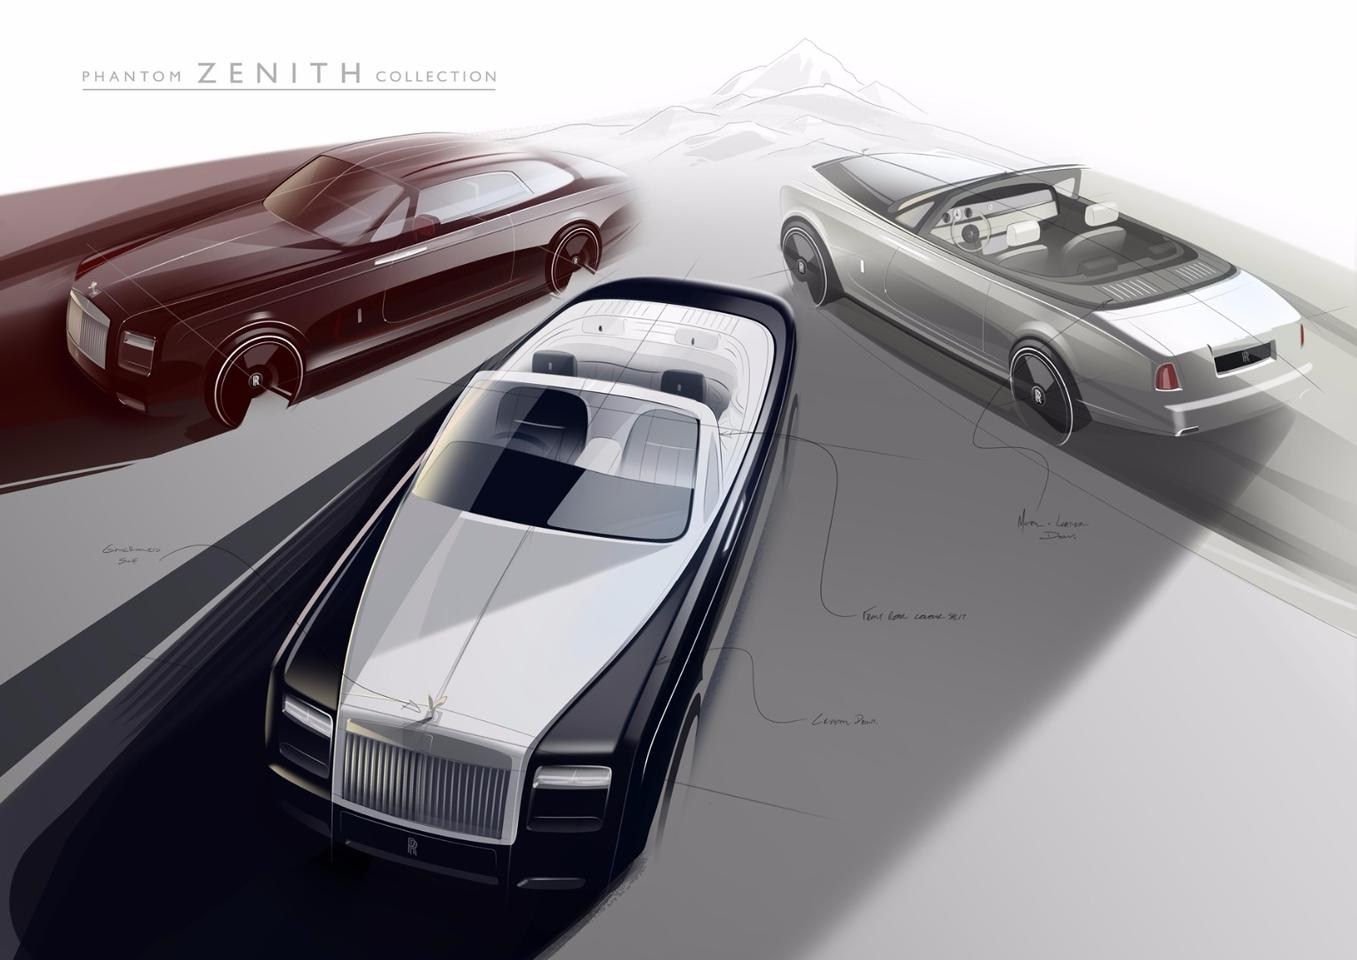 The Phantom Zenith Collection was conceived to celebrate the Phantom Drophead Coupé and the Phantom Coupé before the two models are discontinued